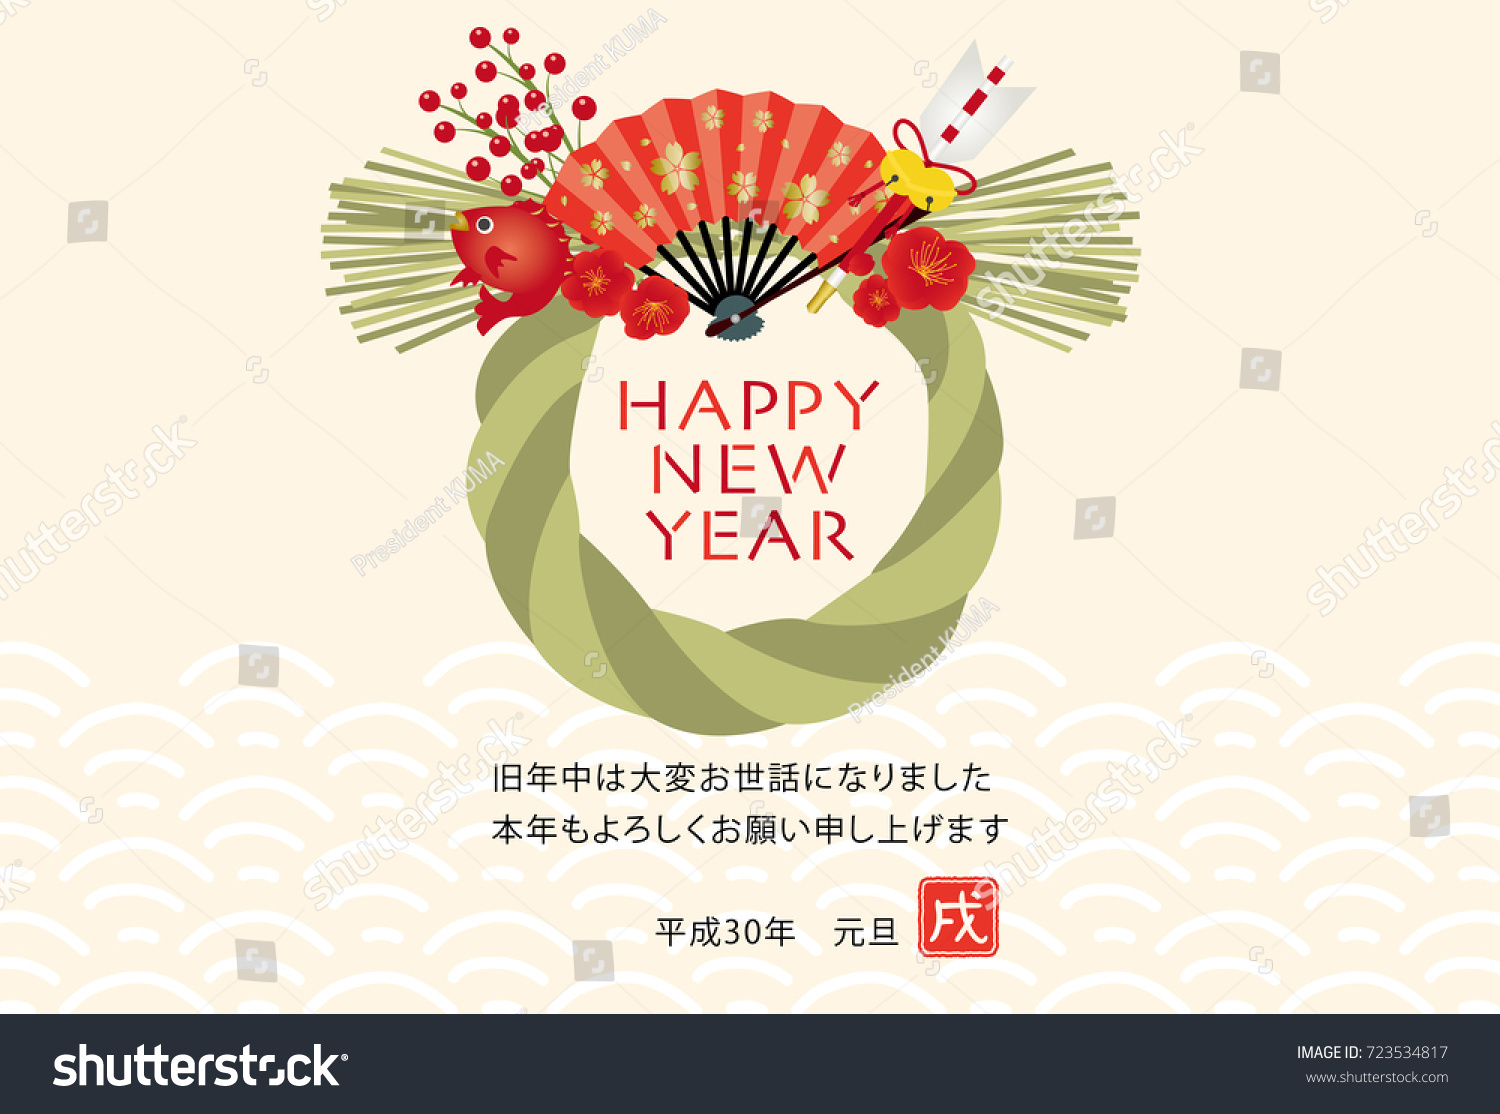 japanese new years card in 2018 in japanese it is written i am